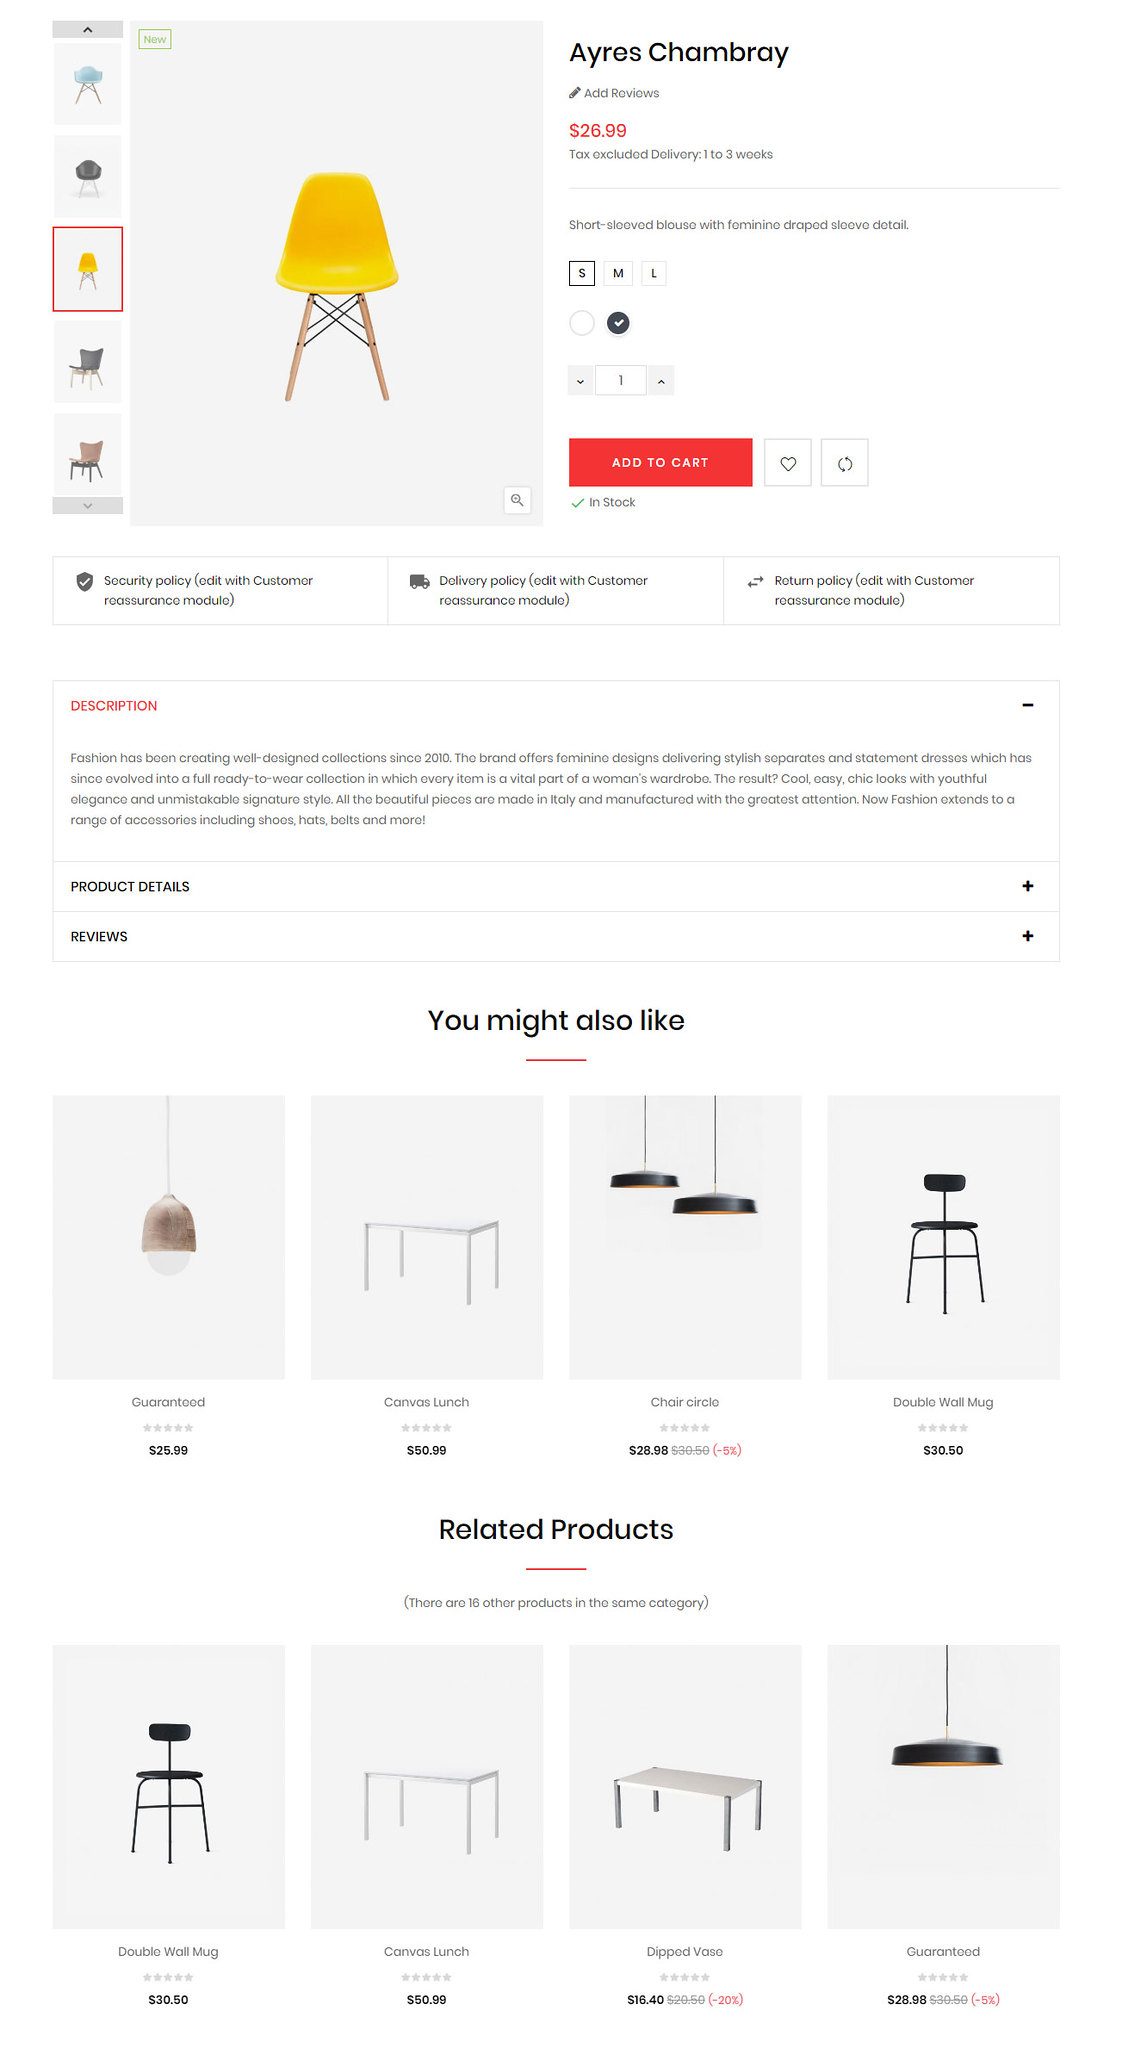 Product image thumbs left